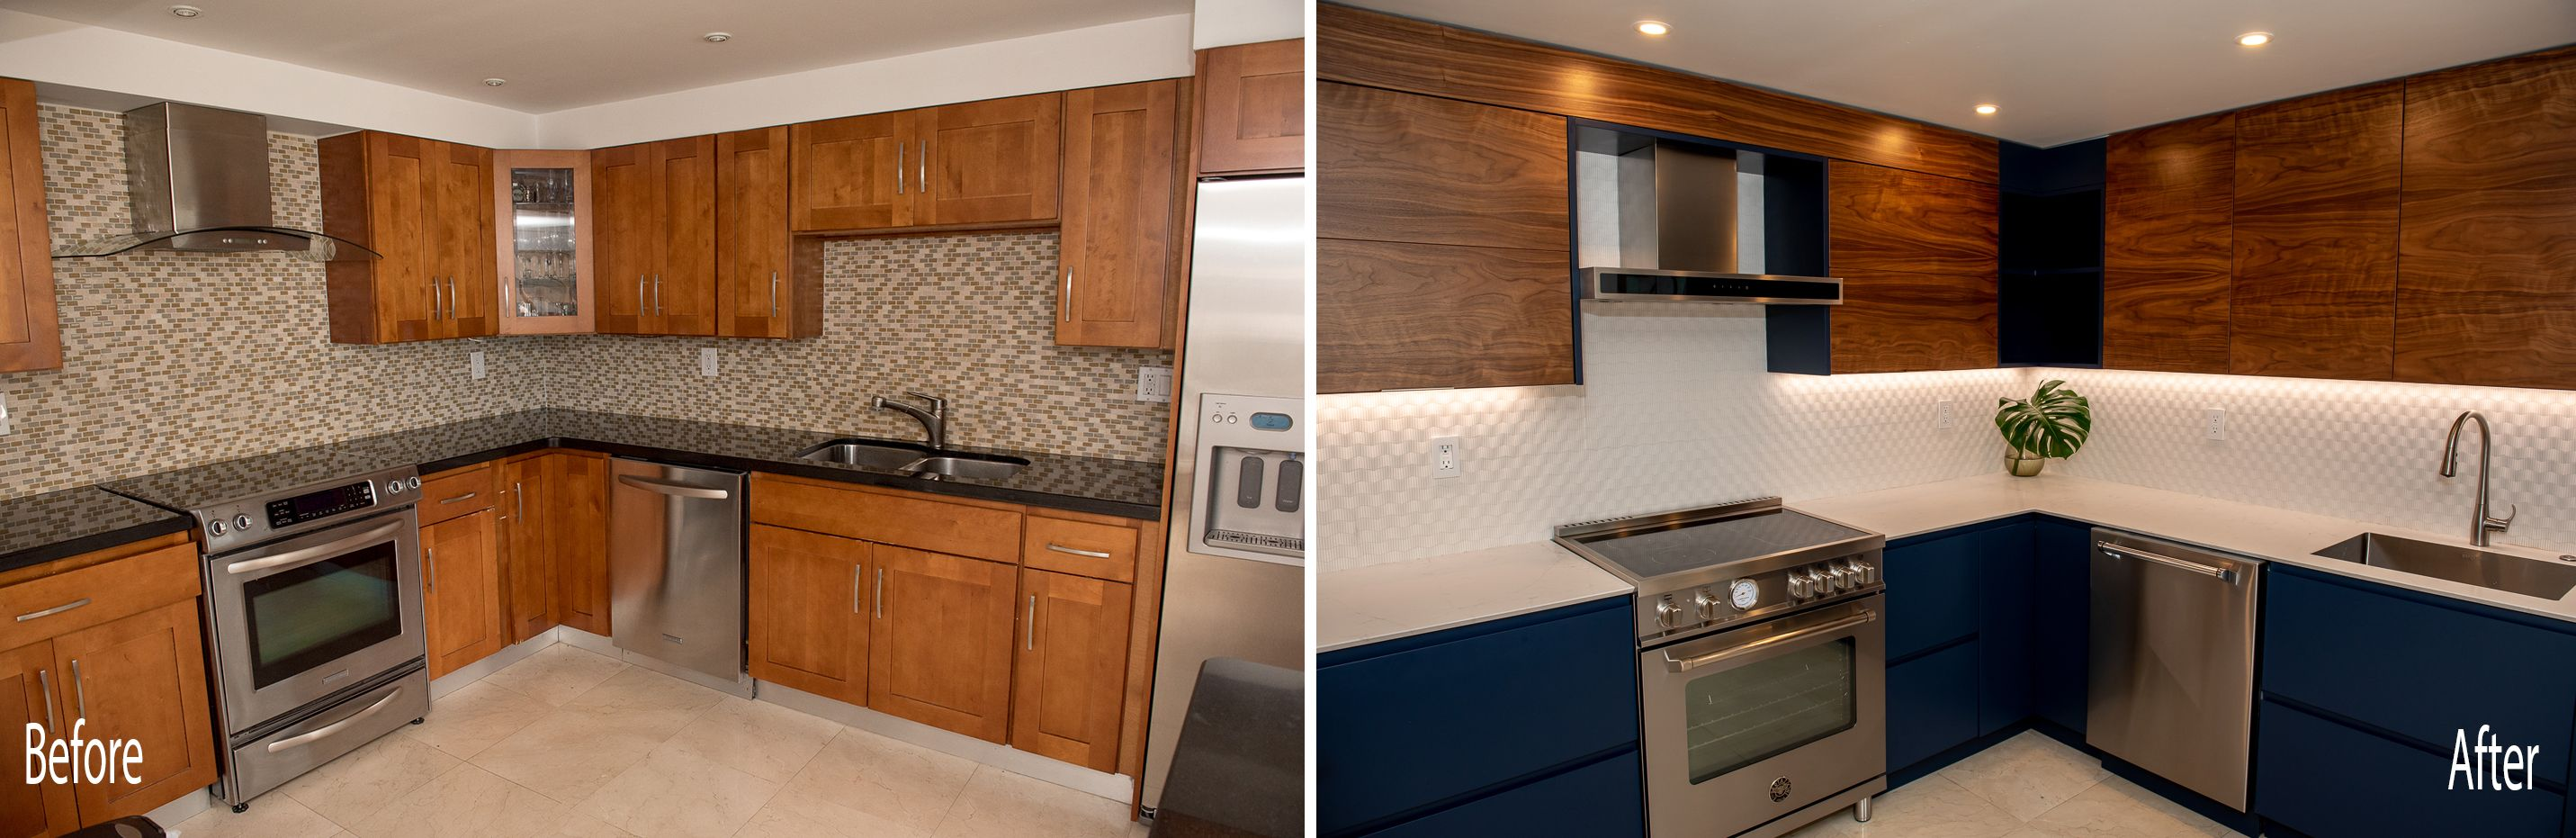 Contemporary Kitchen Remodel Done In A Two Tone Color Contemporary Kitchen Remodel Kitchen Remodel Contemporary Kitchen